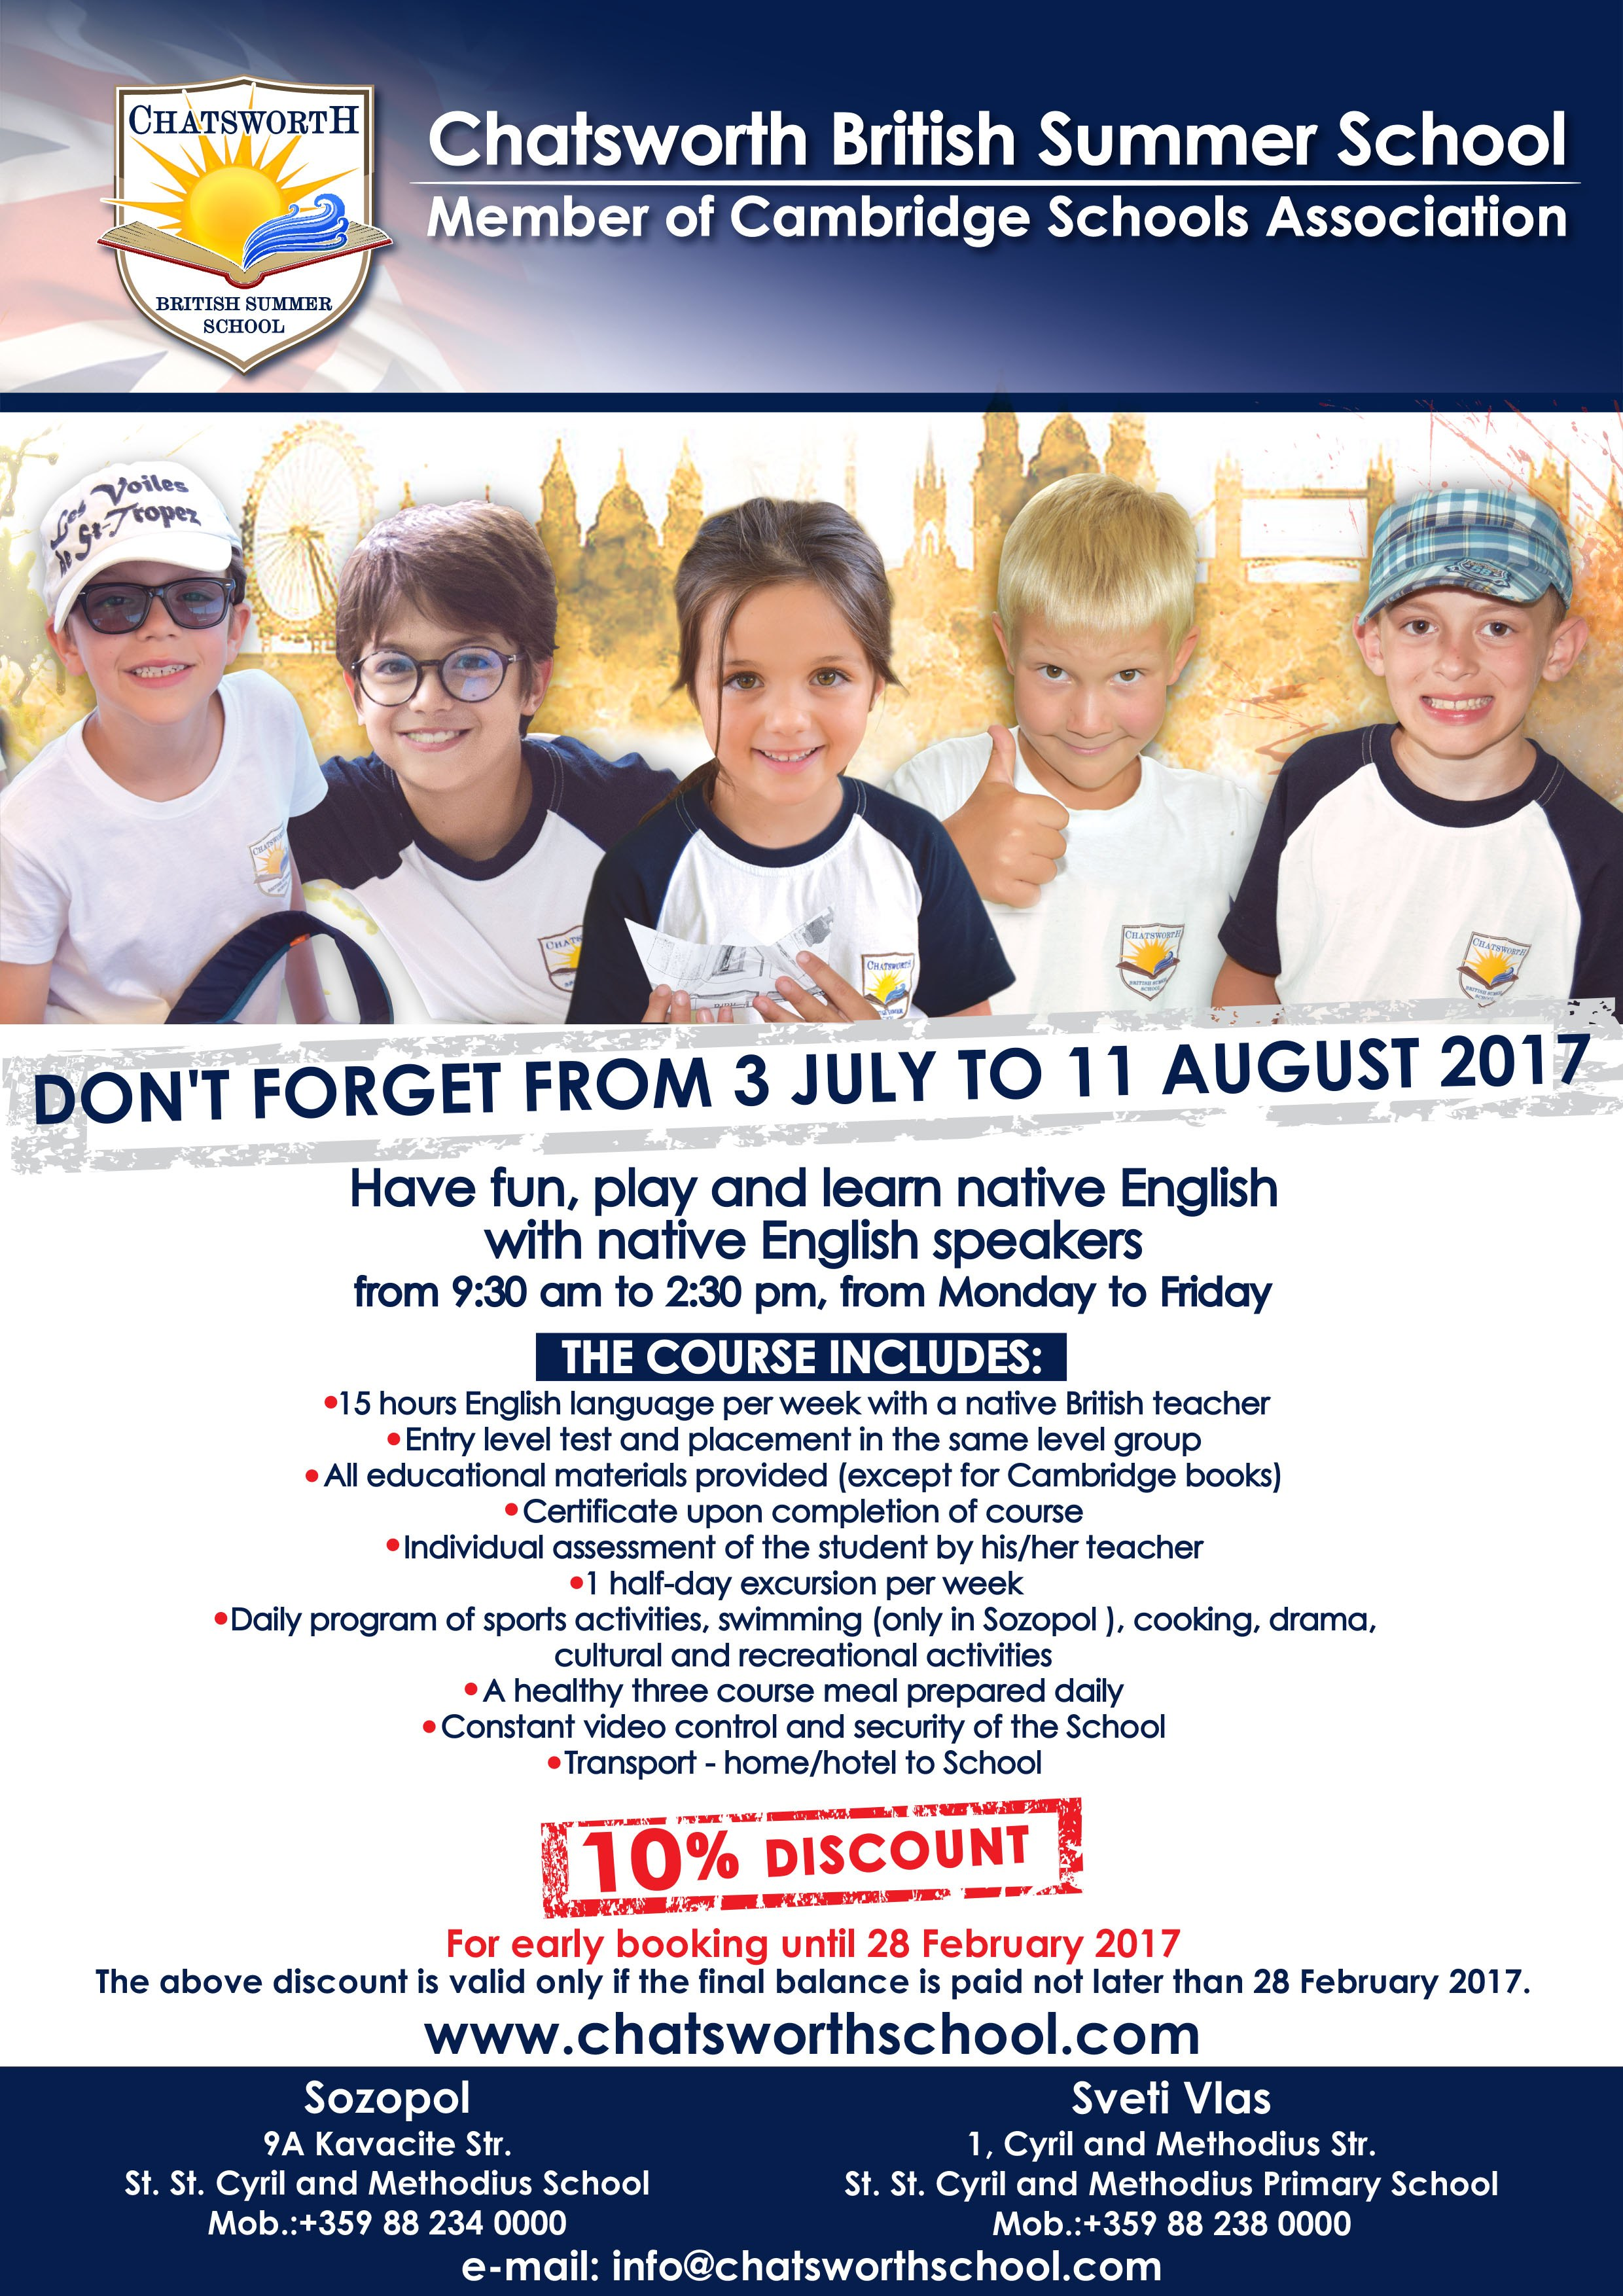 Chatsworth British Summer School 2017 - Santa Marina